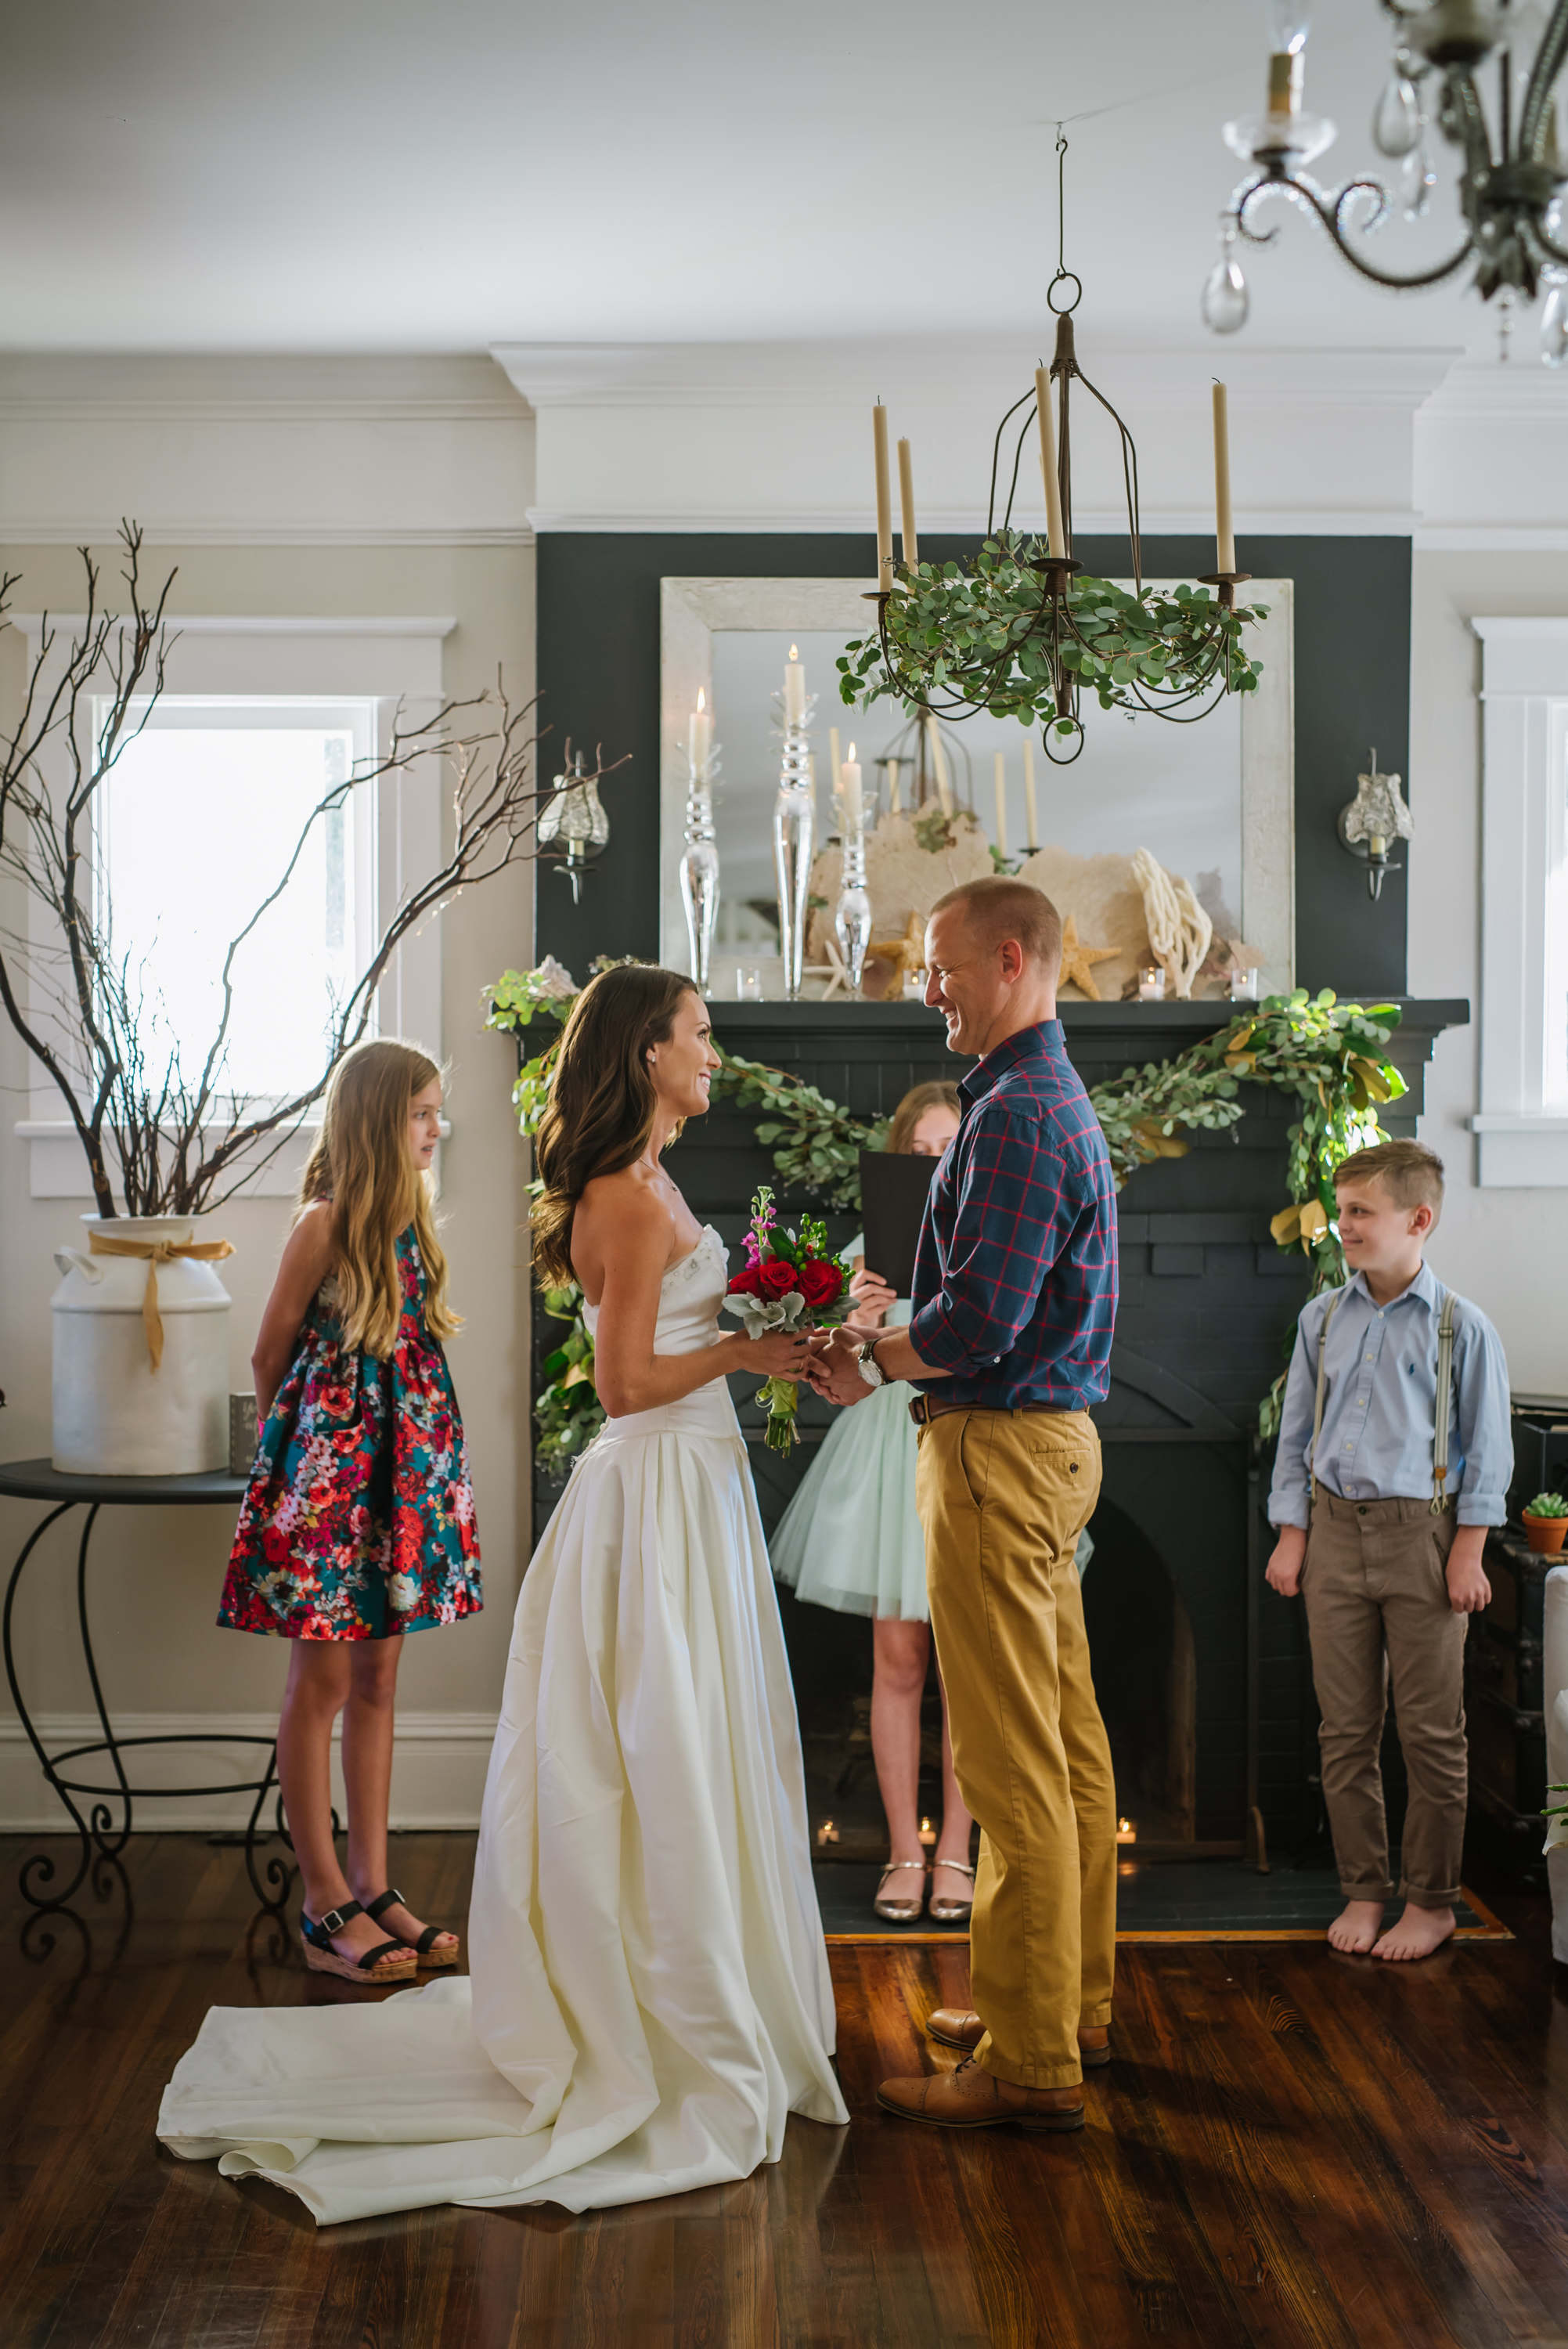 Valynnda and Steven celebrated their 15 year wedding anniversary with a SURPRISE vow renewal in their home! She is in her original wedding dress people! And their THREE children were amazing. It was the most intimate and inspiring ceremony yet.